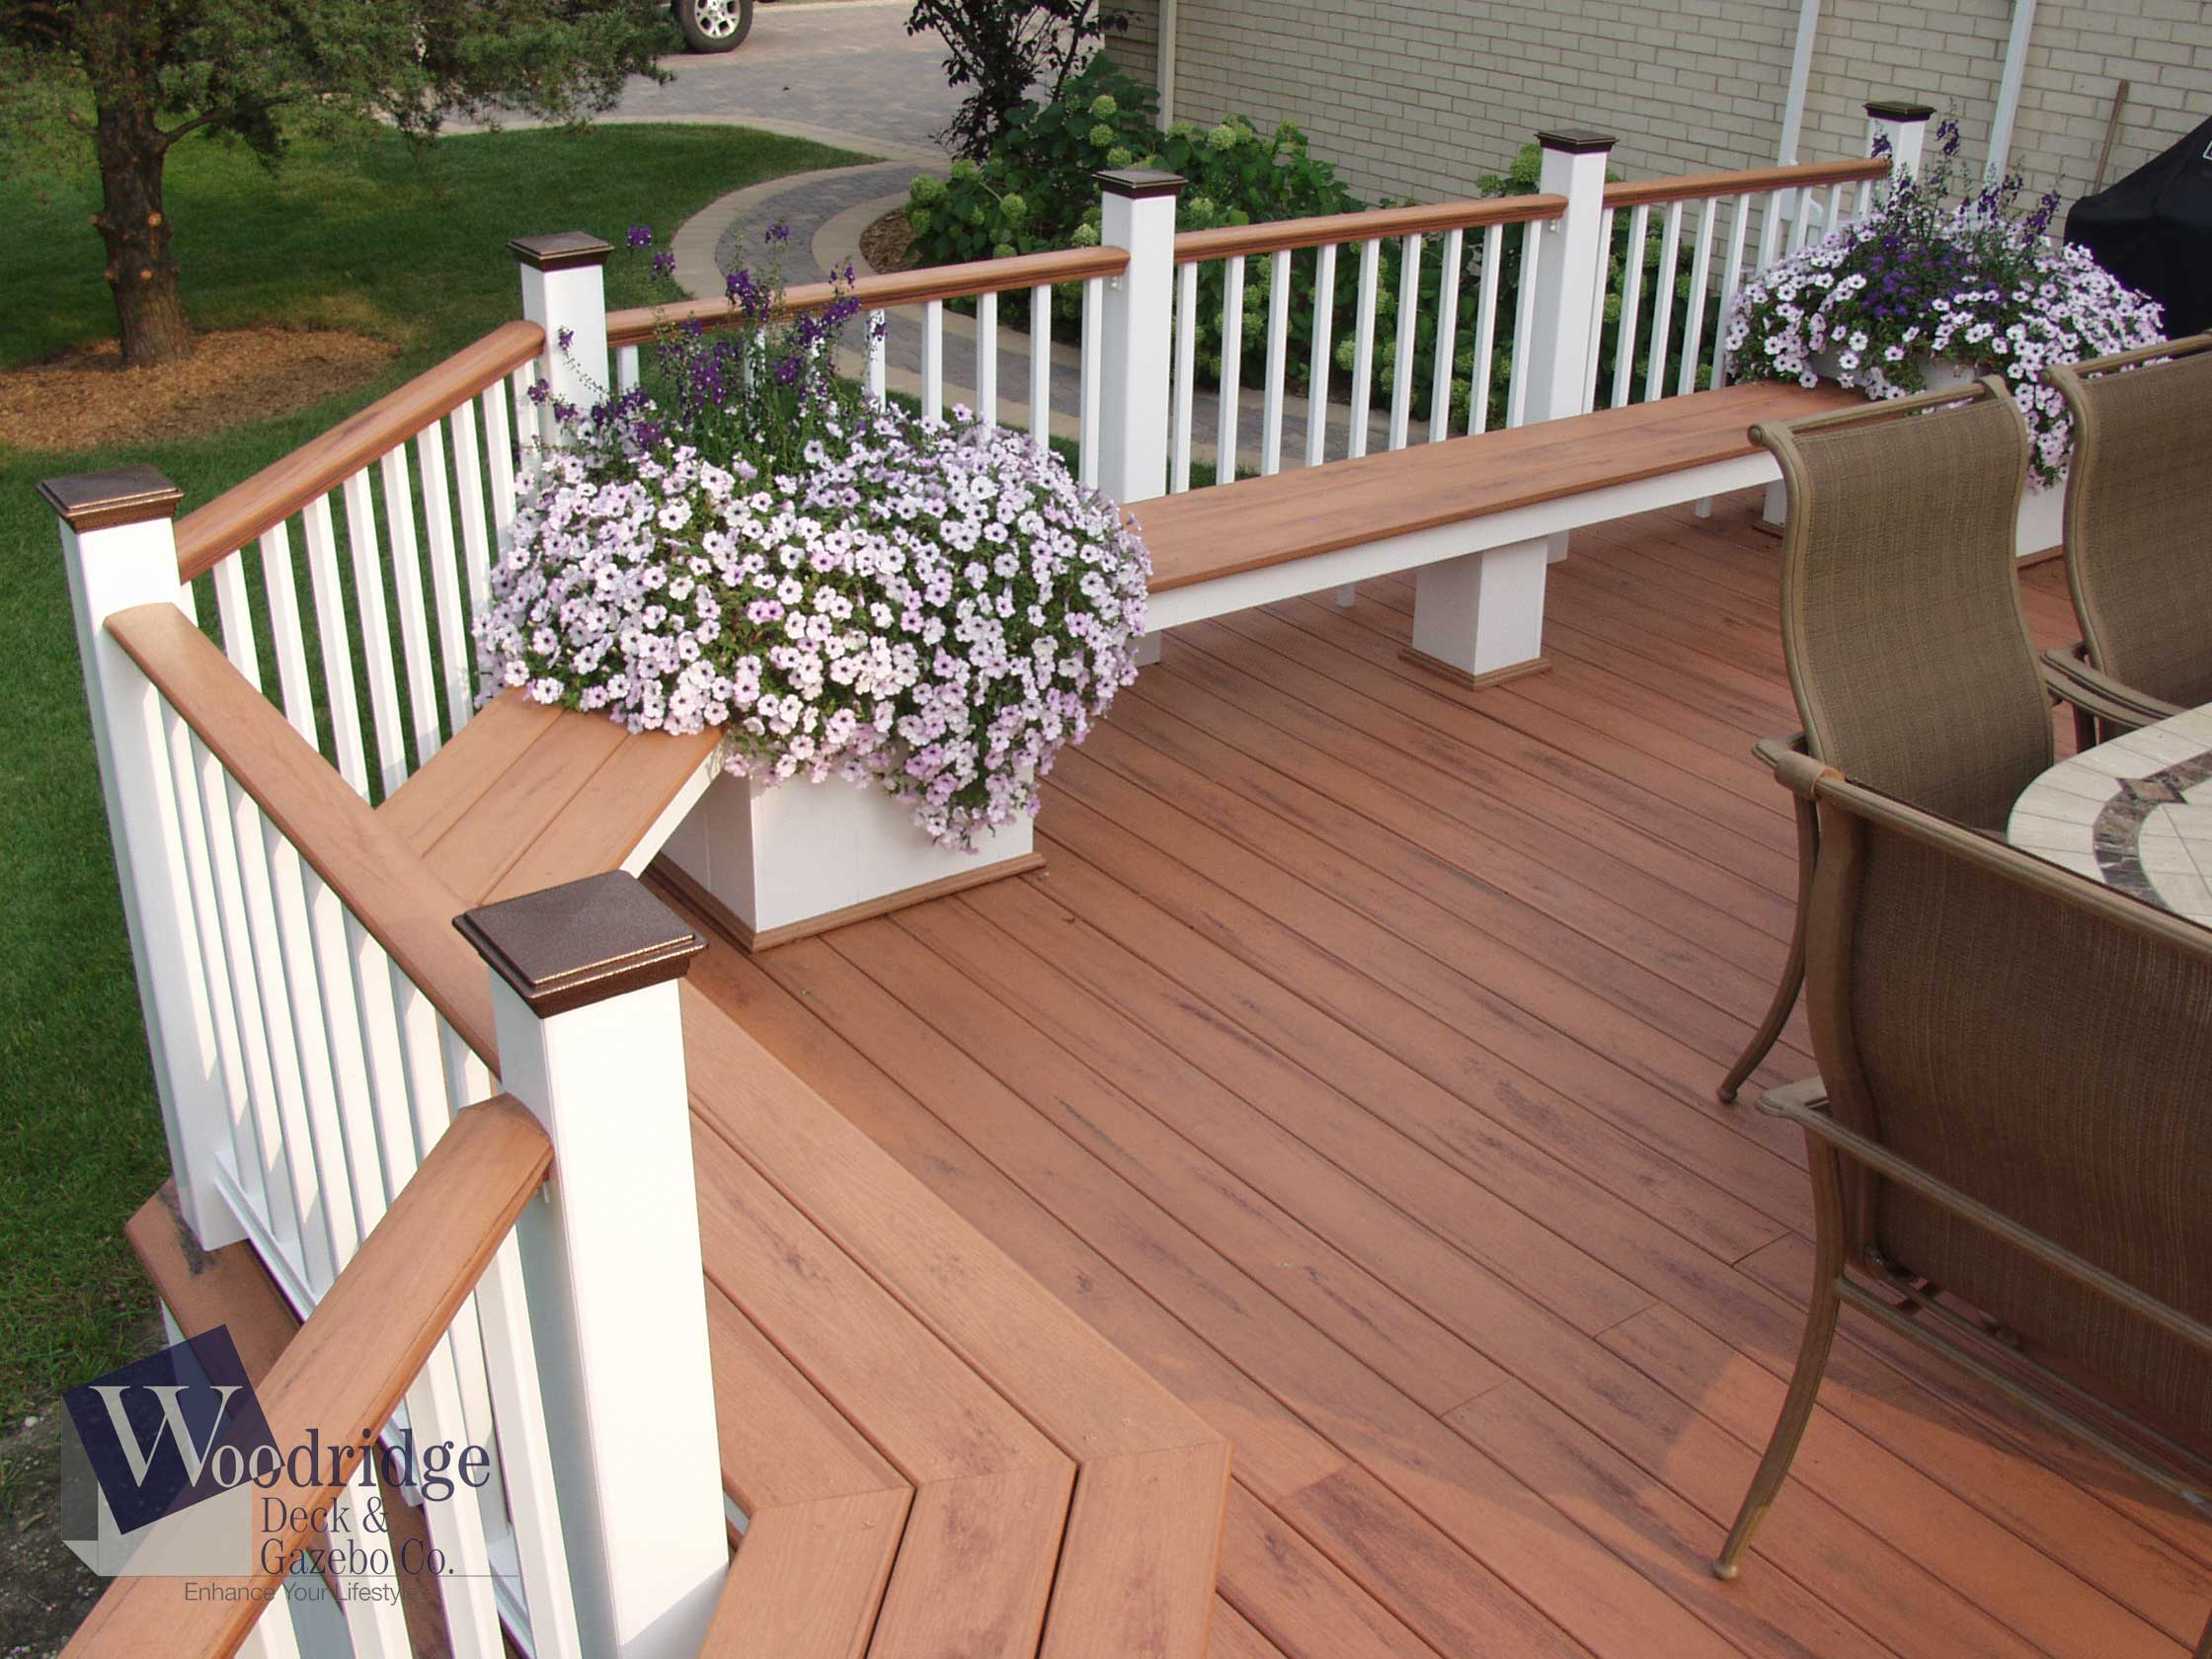 Decks, Gazebos And Outdoor Living Spaces In Chicagoland